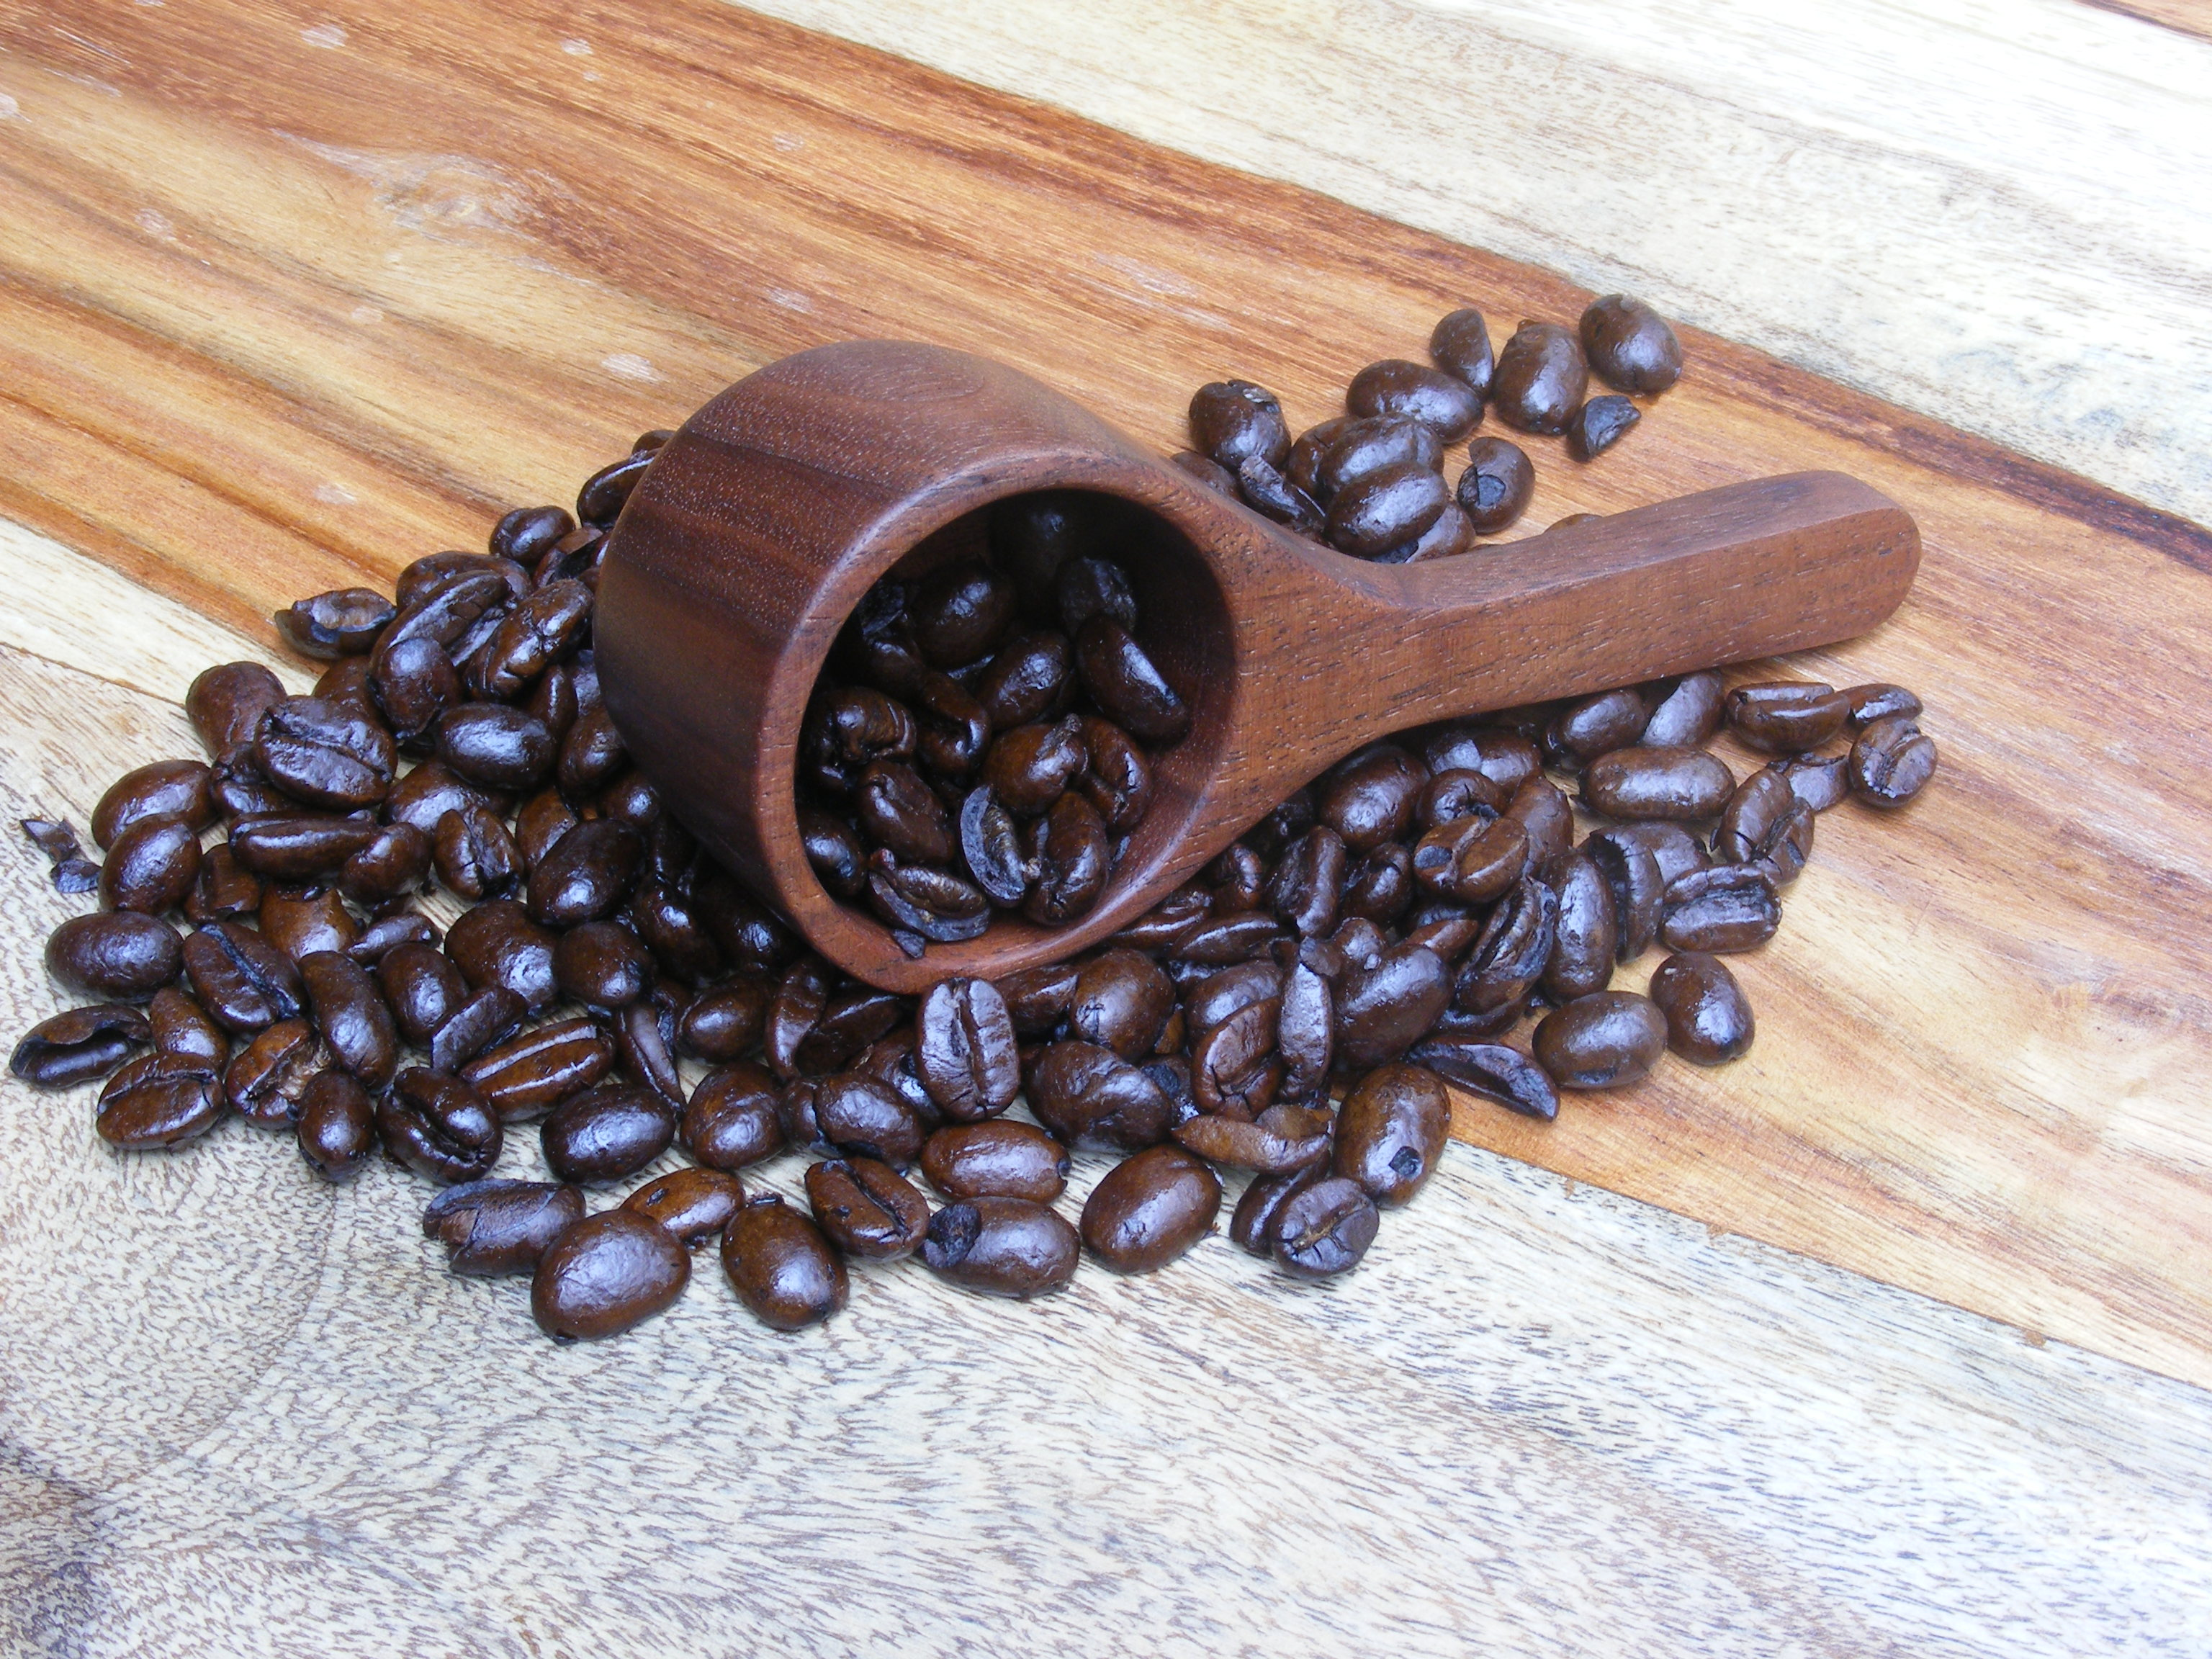 make a wooden coffee scoop